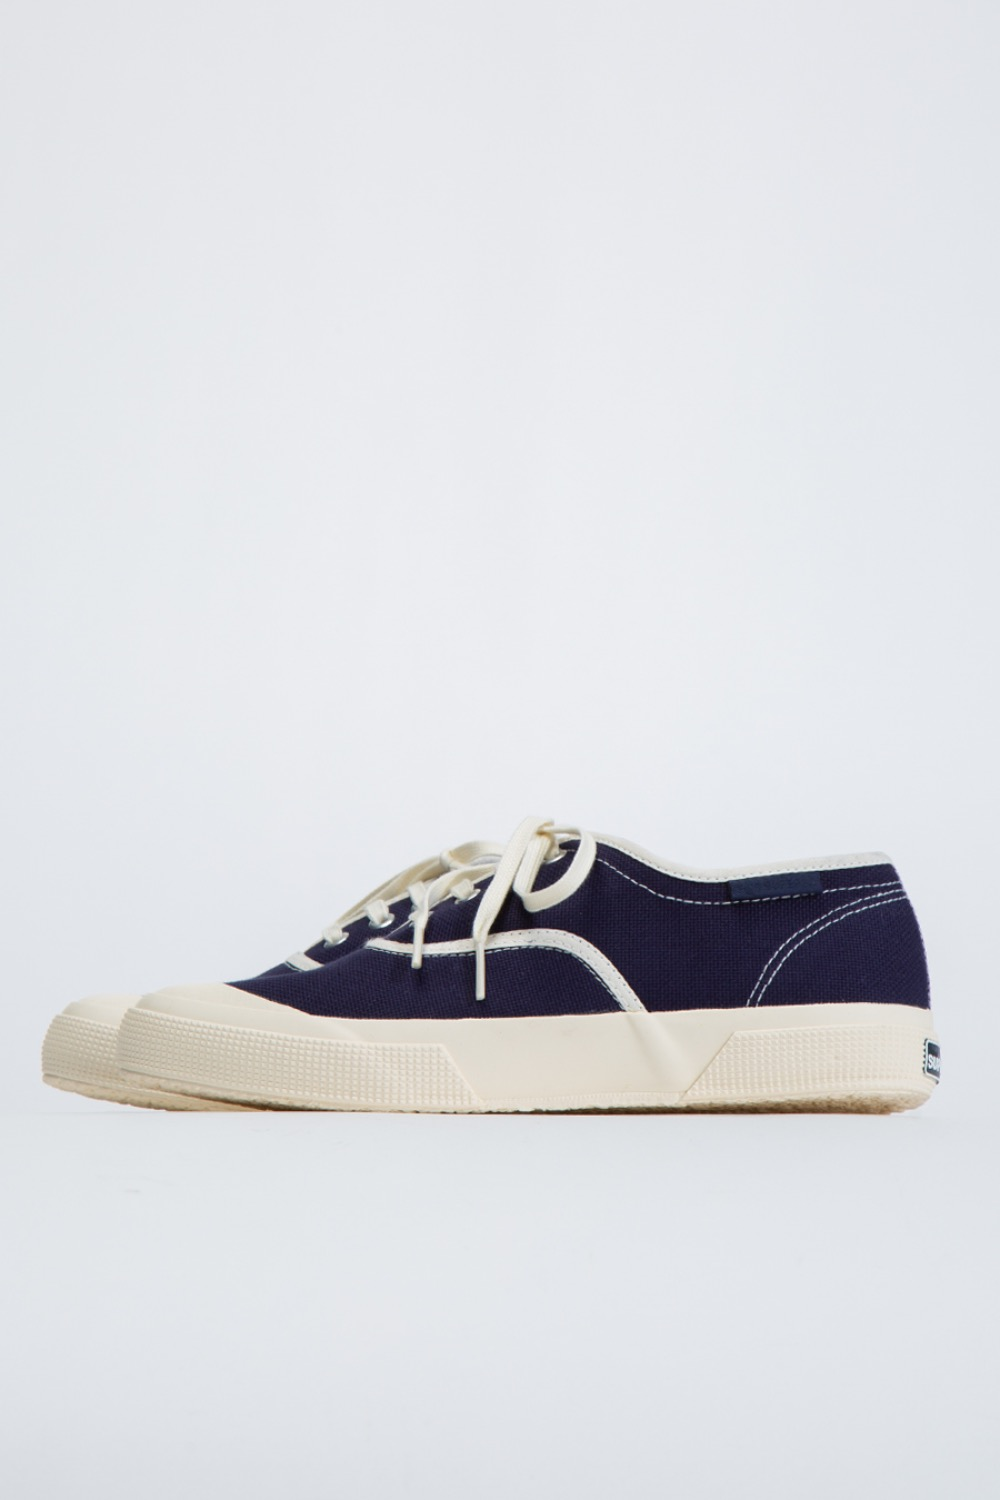 KAPTAIN SUNSHINE X SUPERGA TRAINER LOW NAVY